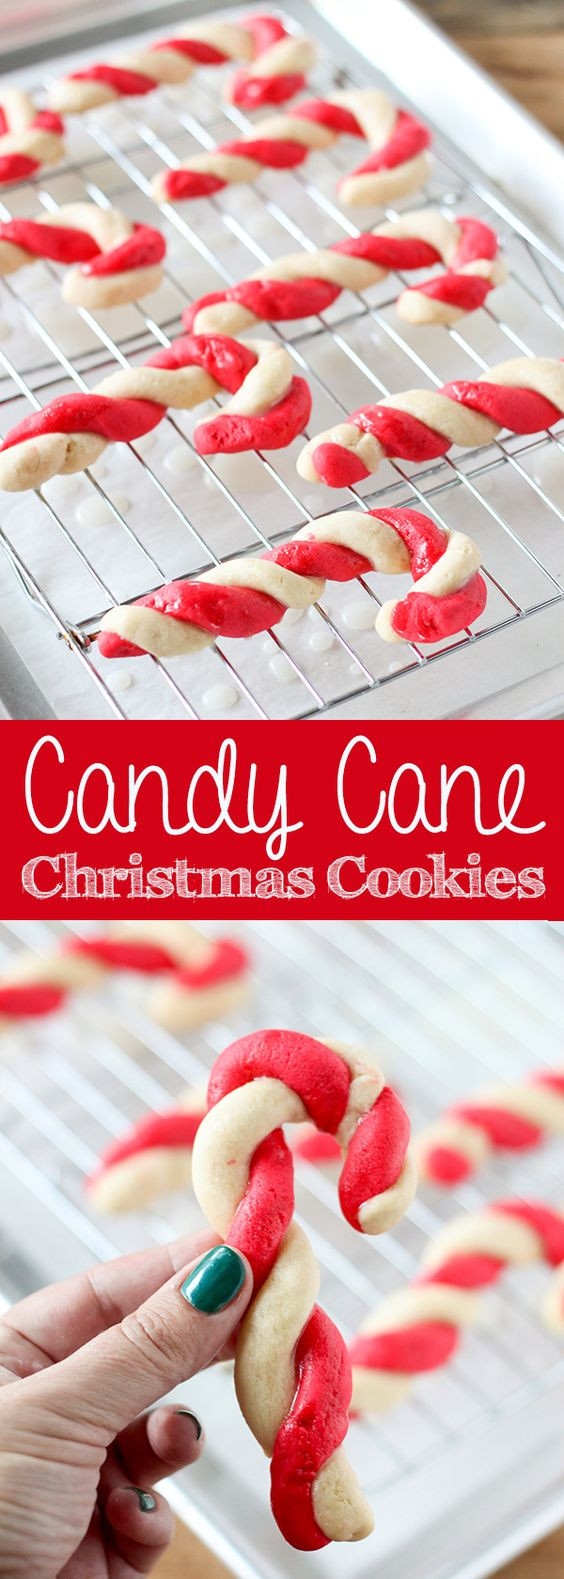 Candy Cane Christmas Cookies  Pinterest • The world's catalog of ideas